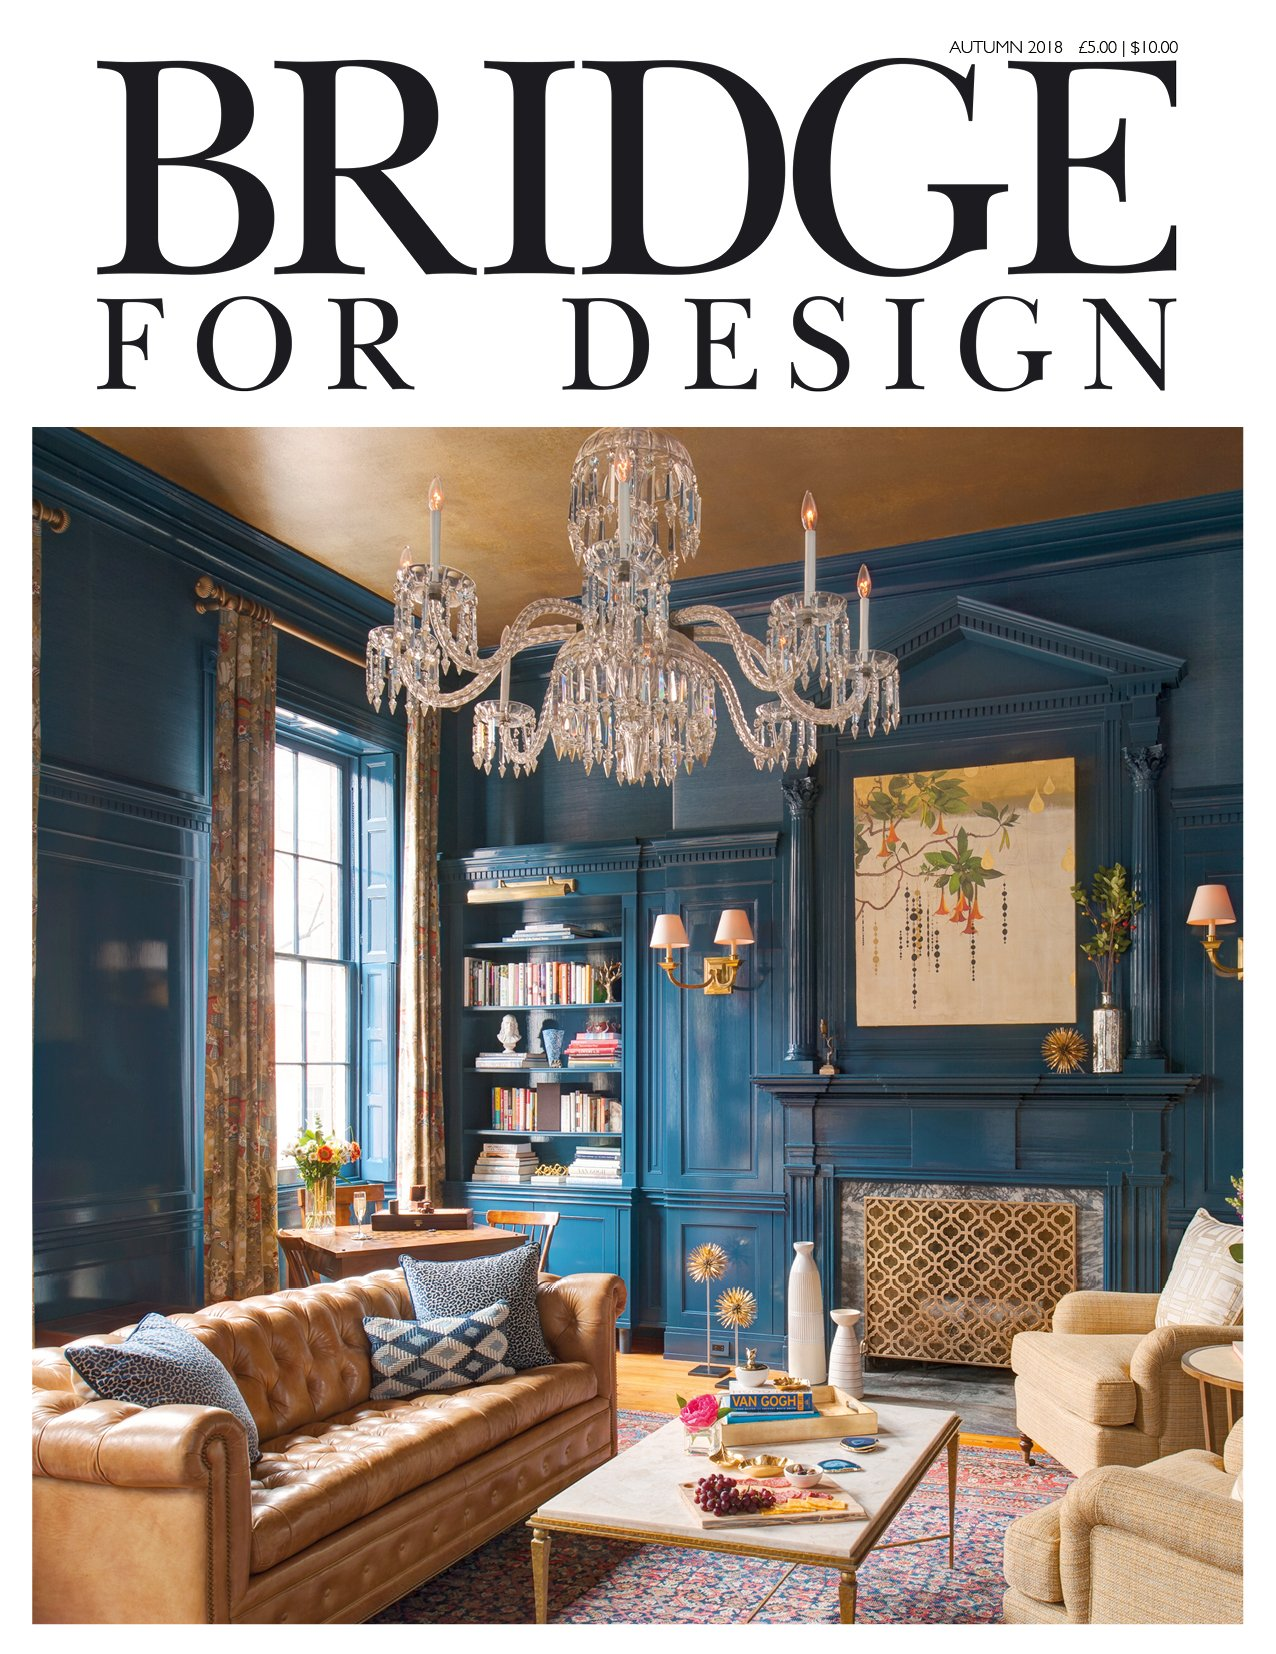 bridge-for-design-autumn-2018.jpg-front-cover